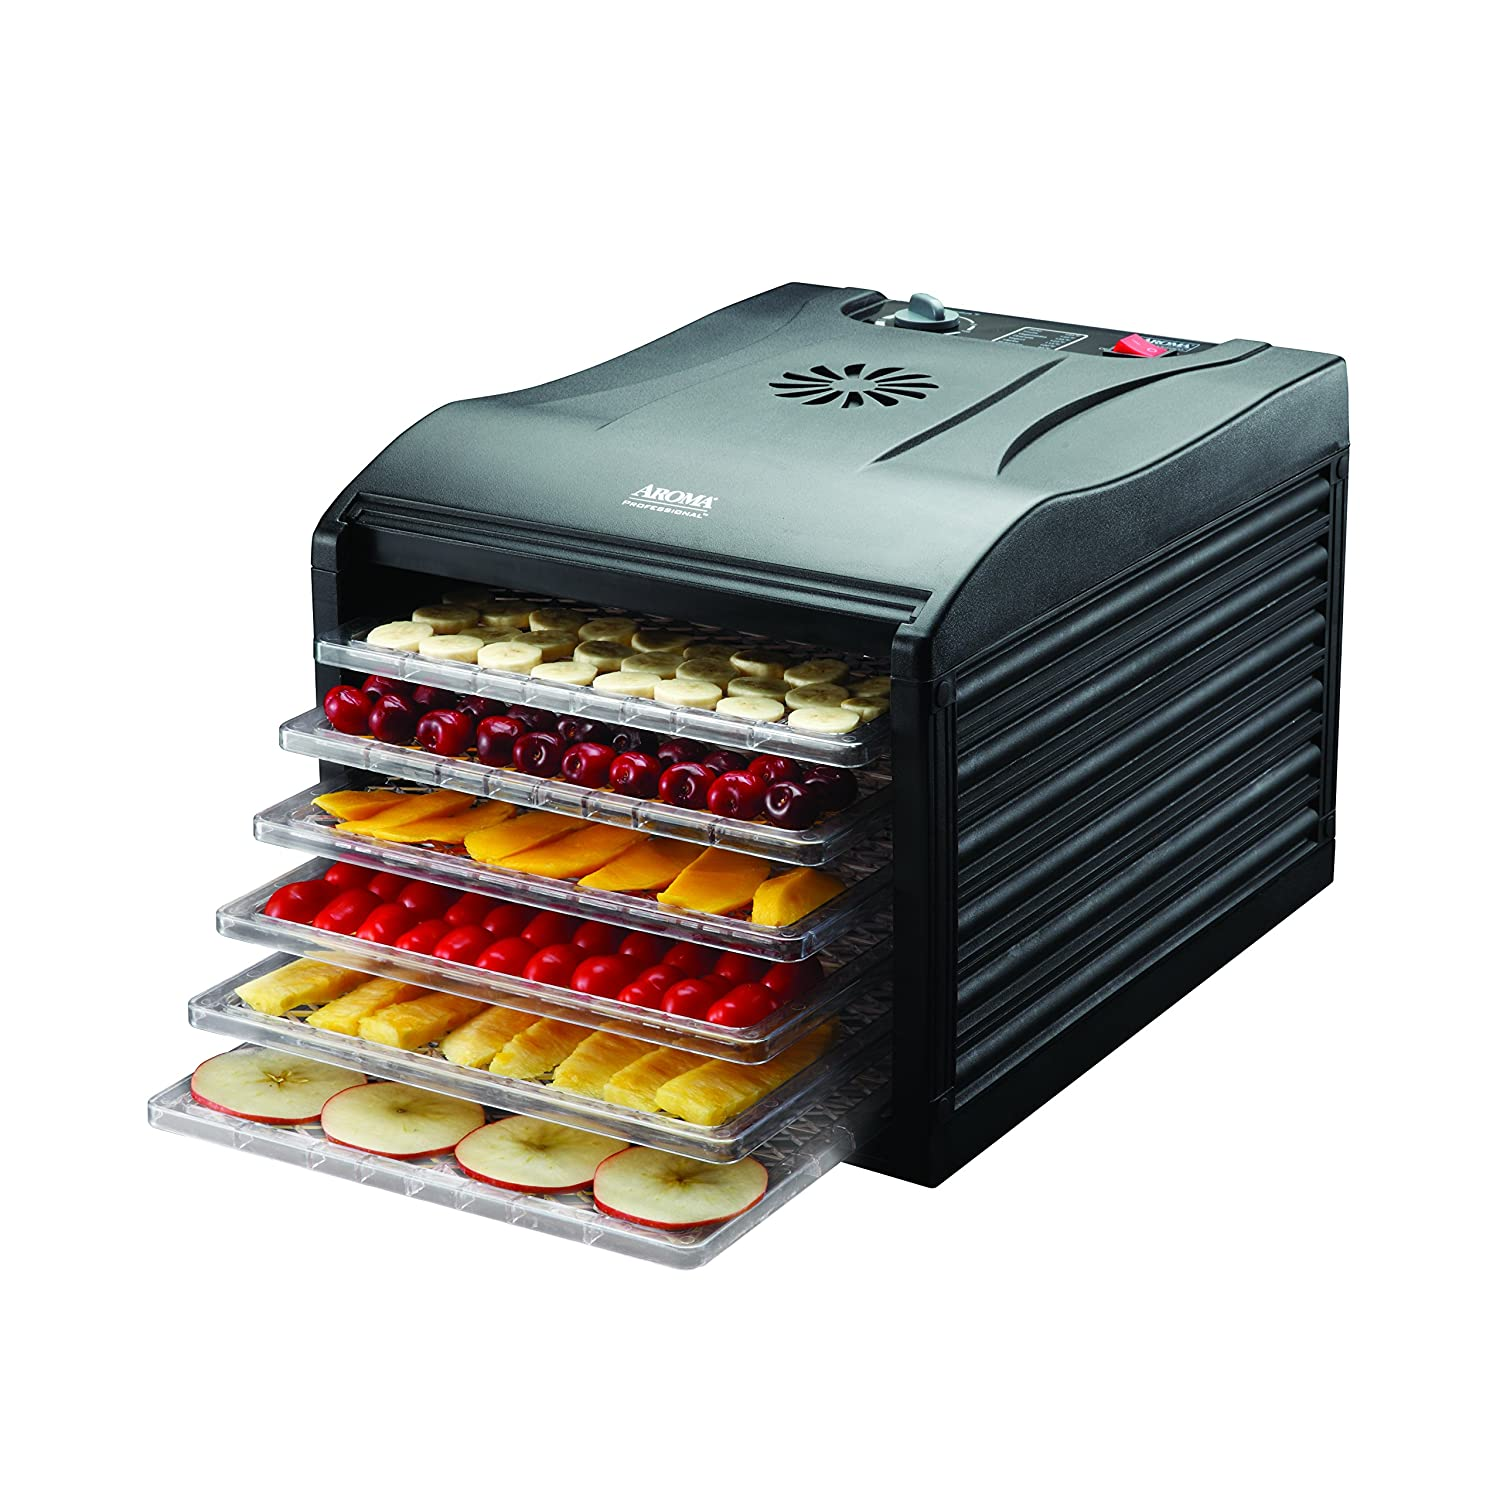 Great Aroma Professional 6 Tray Food Dehydrator, Black